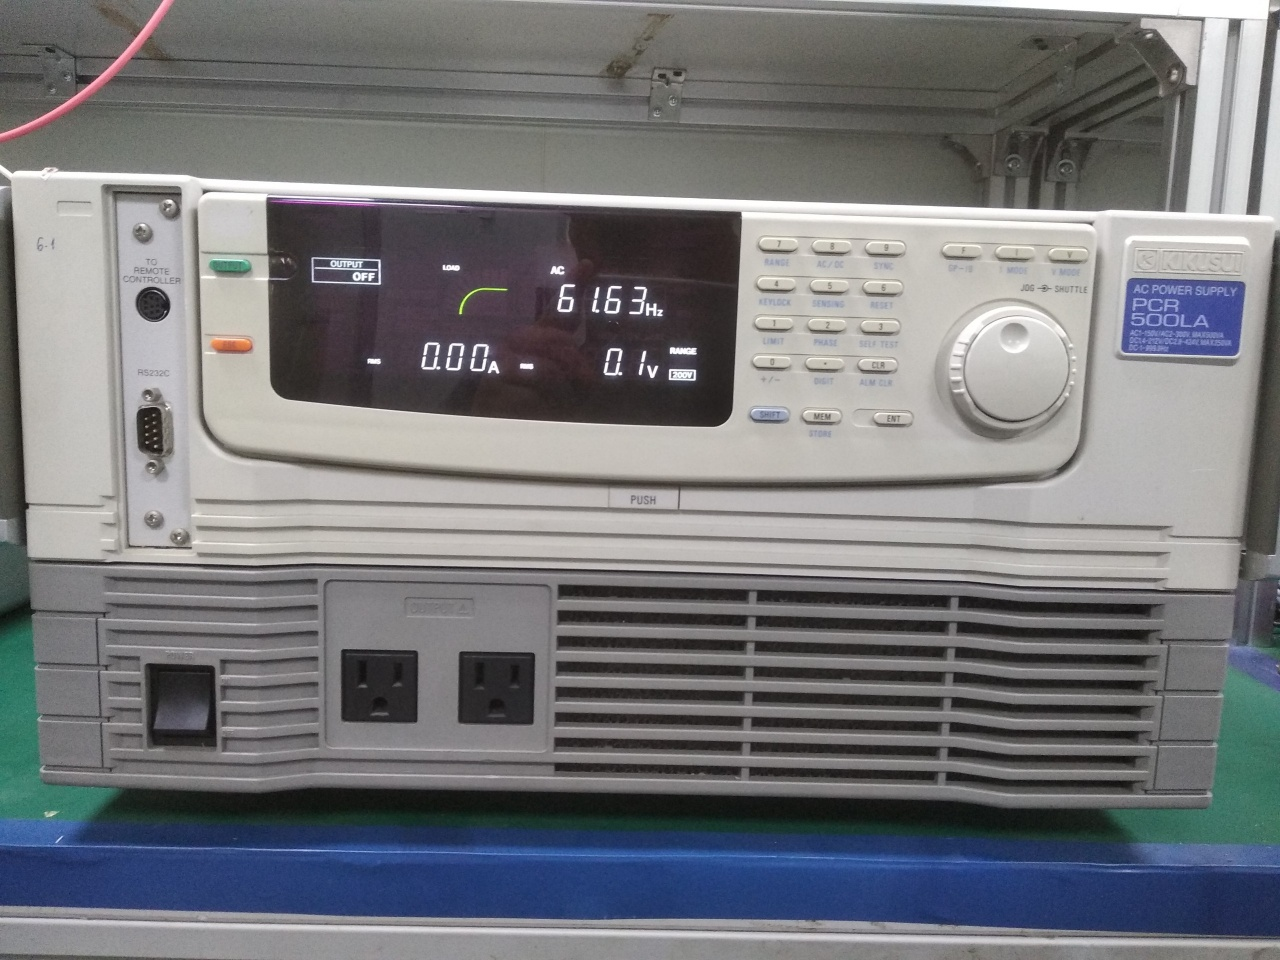 Thanh lý PCR 500 LA AC Power supply PCR500 Kikusui, bán PCR 500 LA AC Power supply PCR500 Kikusui cũ